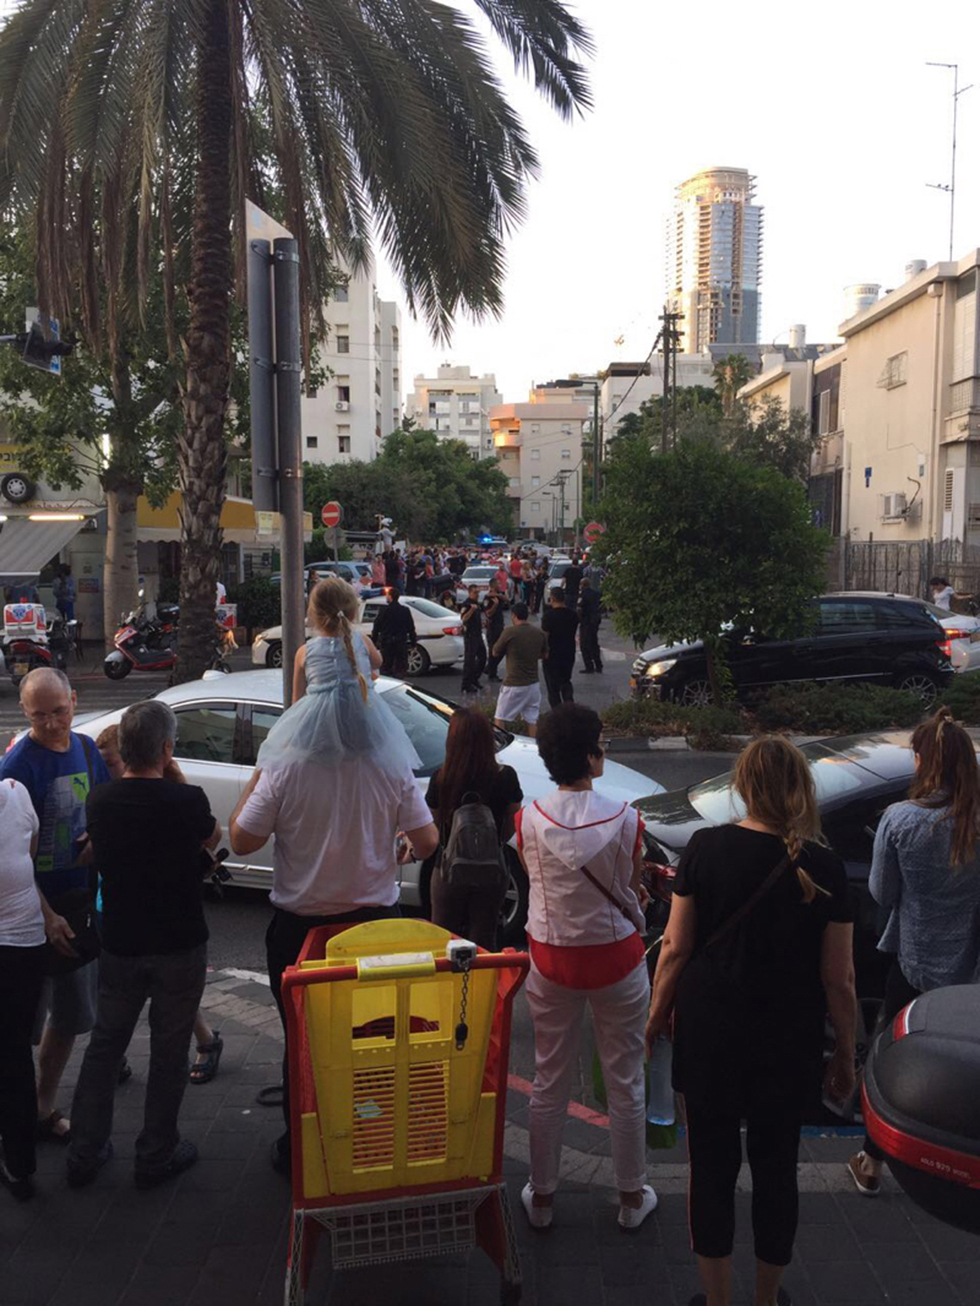 Area of the stabbing in Tel Aviv (Photo: Guy Mado)